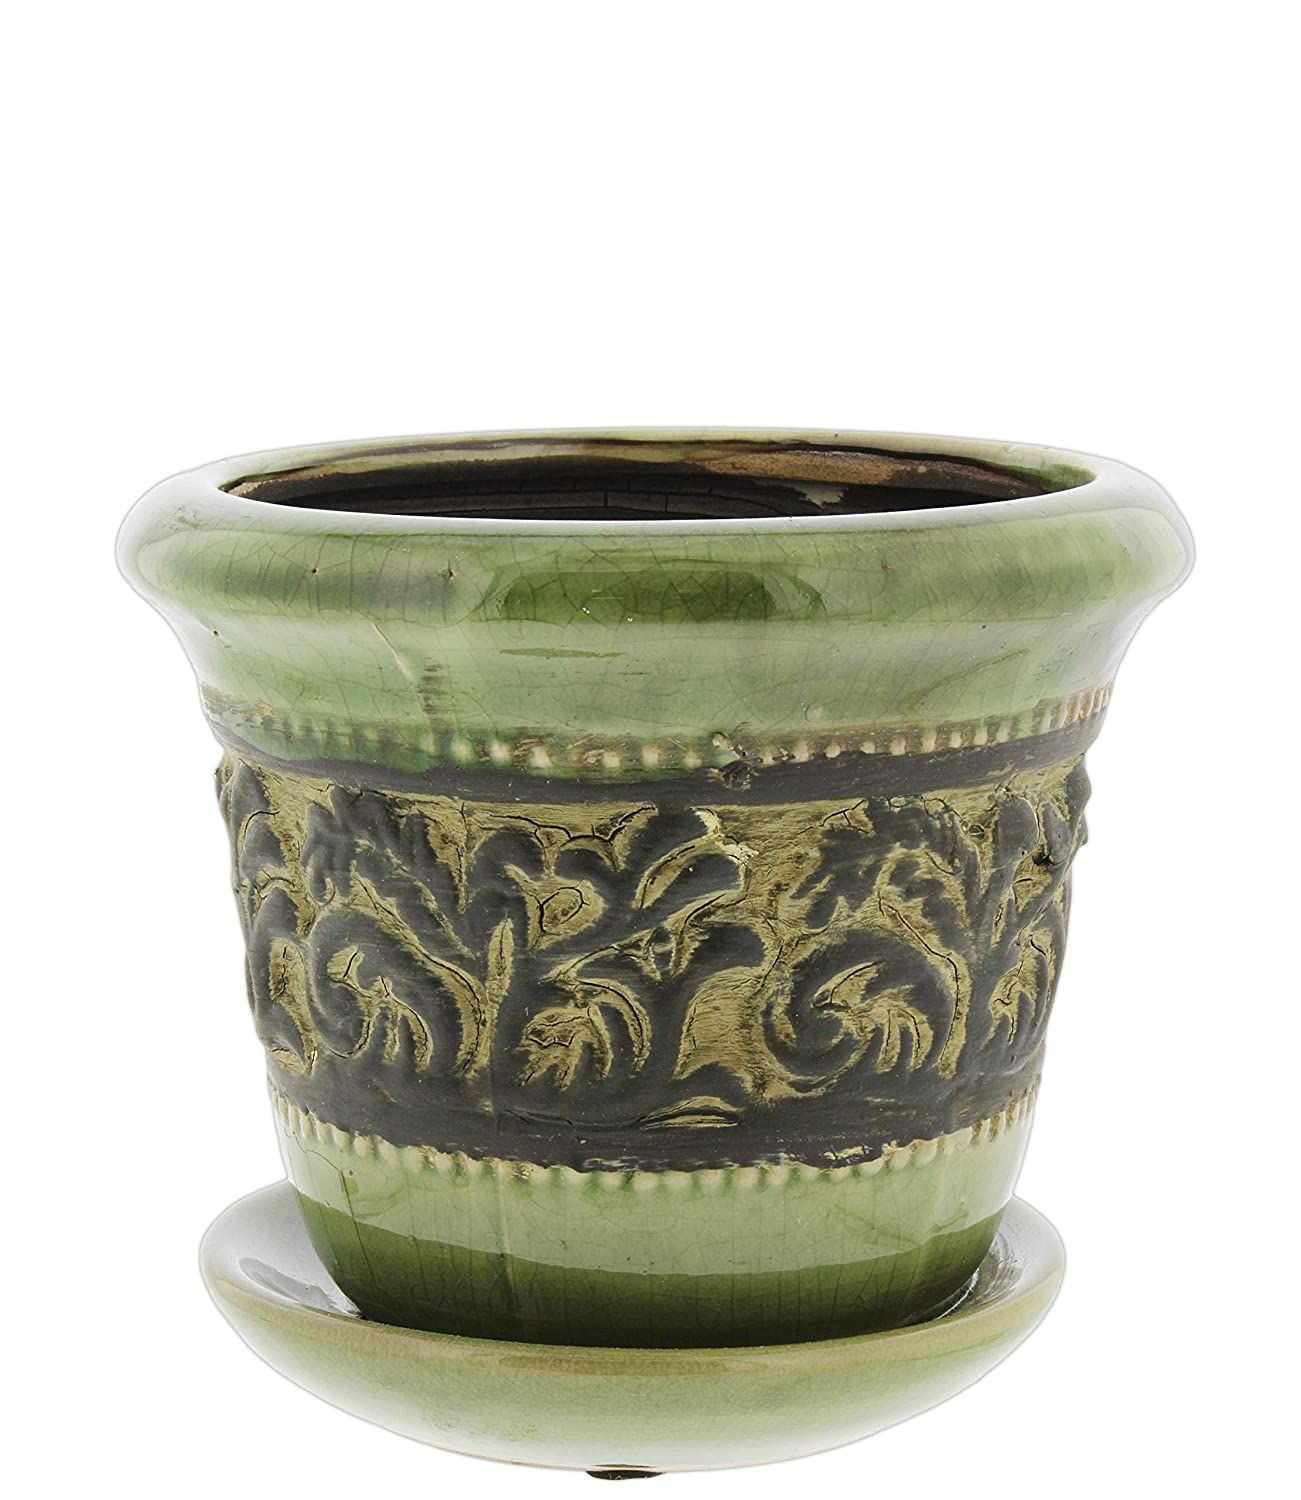 Lucky Winner Green Ceramic Planter with Trellis Pattern and Attached Saucer, 5.5